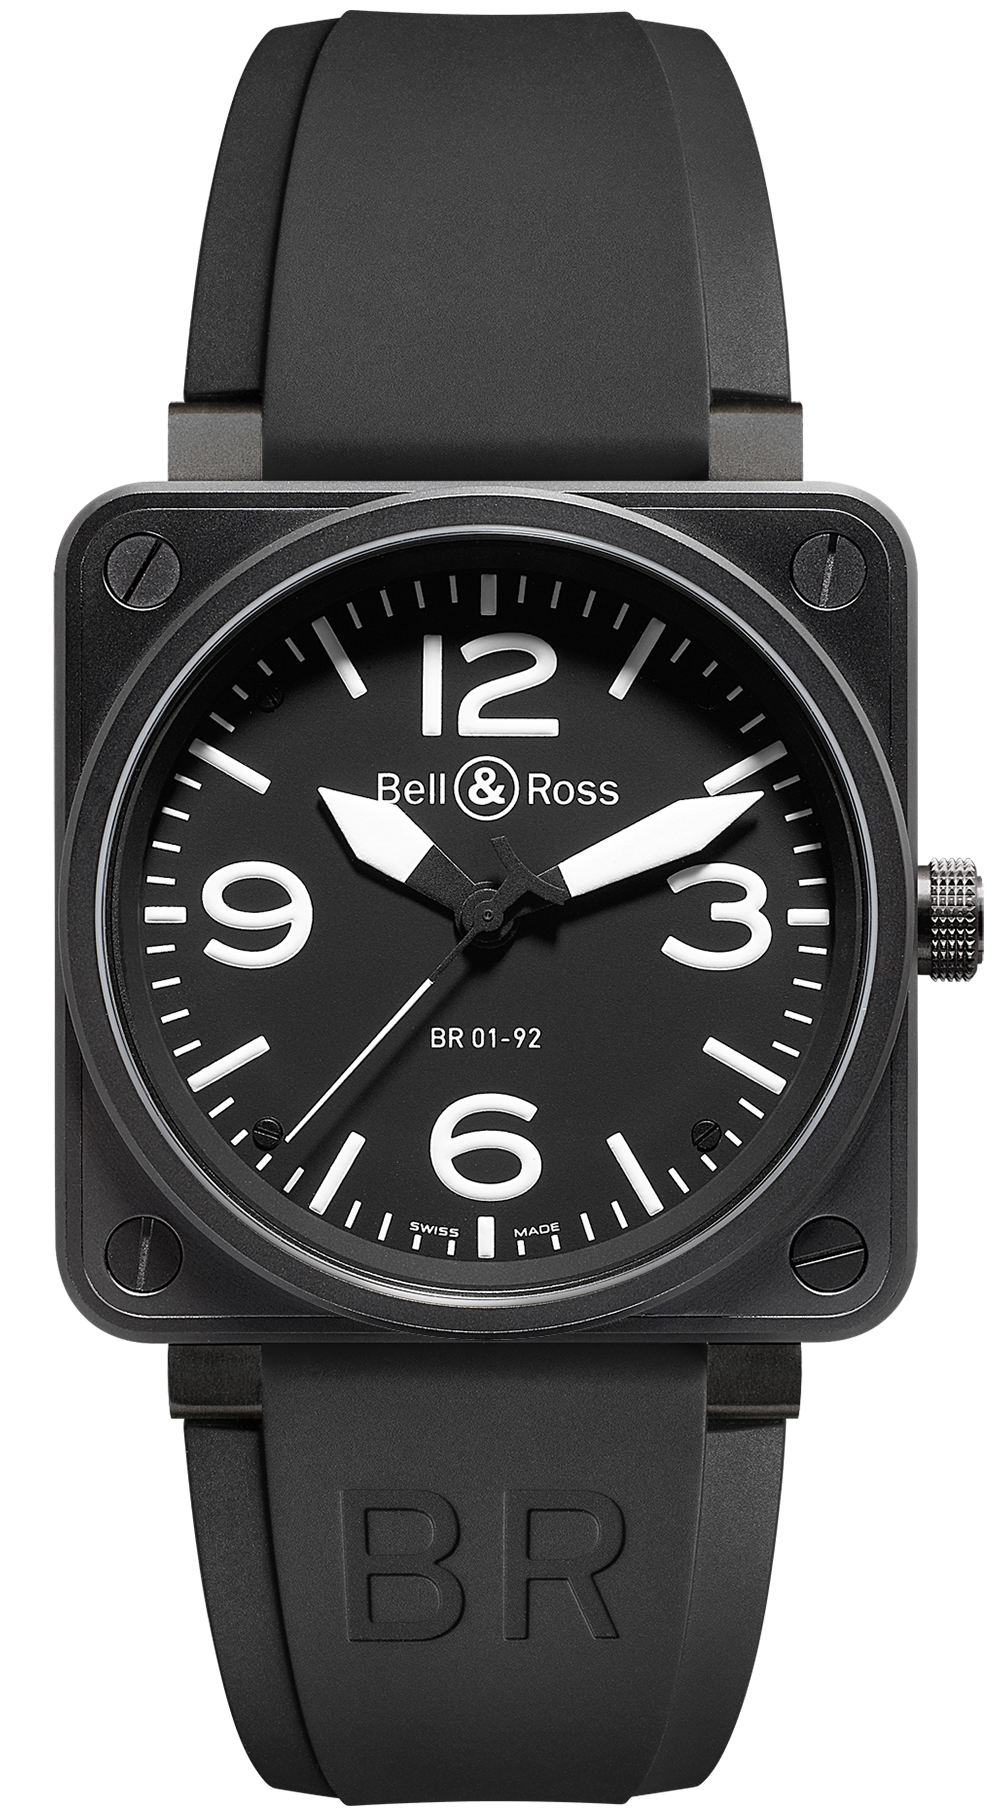 bell ross watch br 01 92 automatic black dial carbon. Black Bedroom Furniture Sets. Home Design Ideas